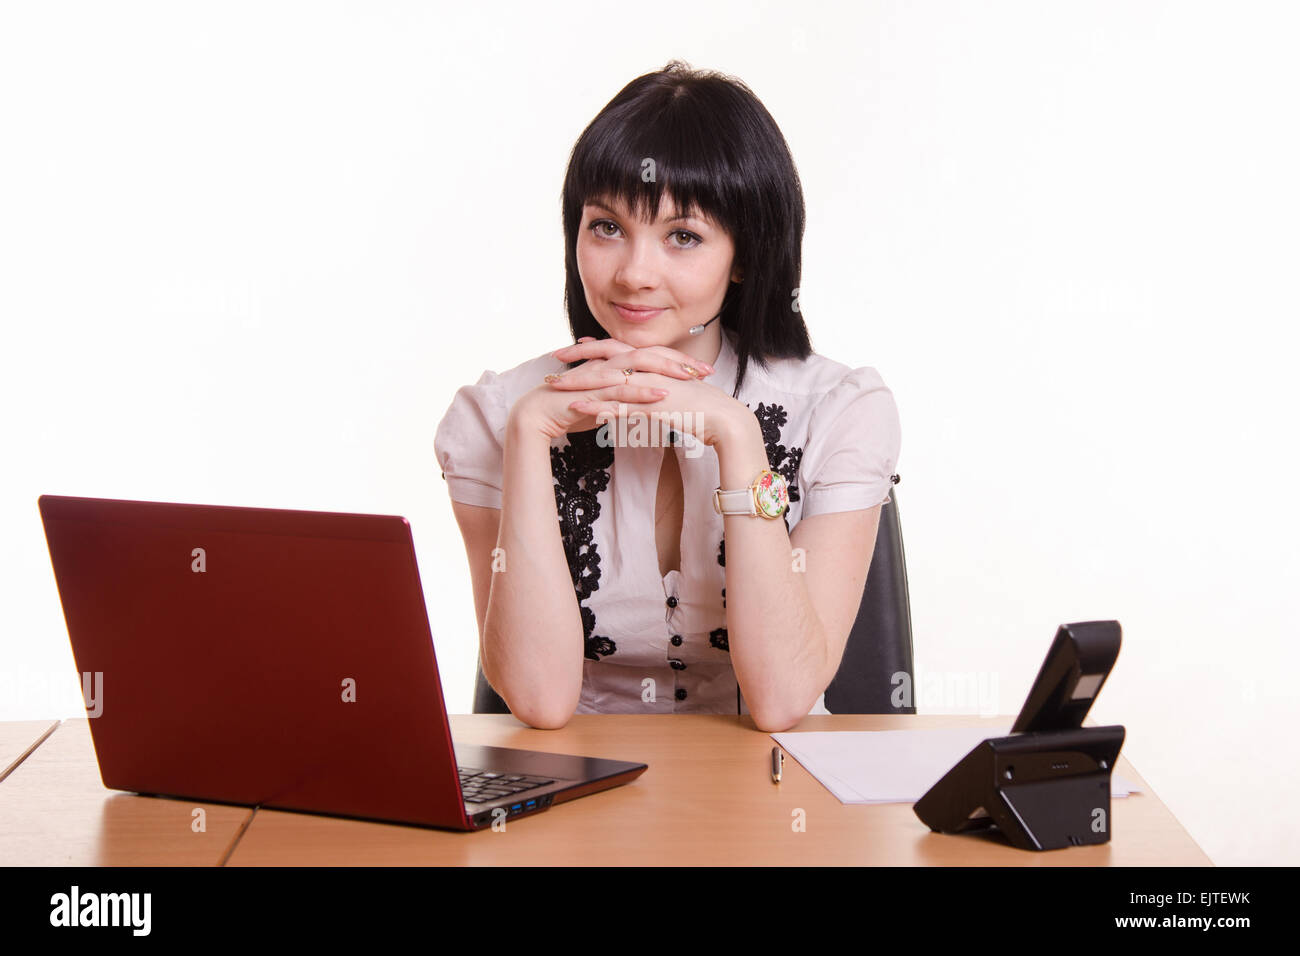 Pretty girl sitting in a call center with a laptop in a white blouse with black embroidery - Stock Image